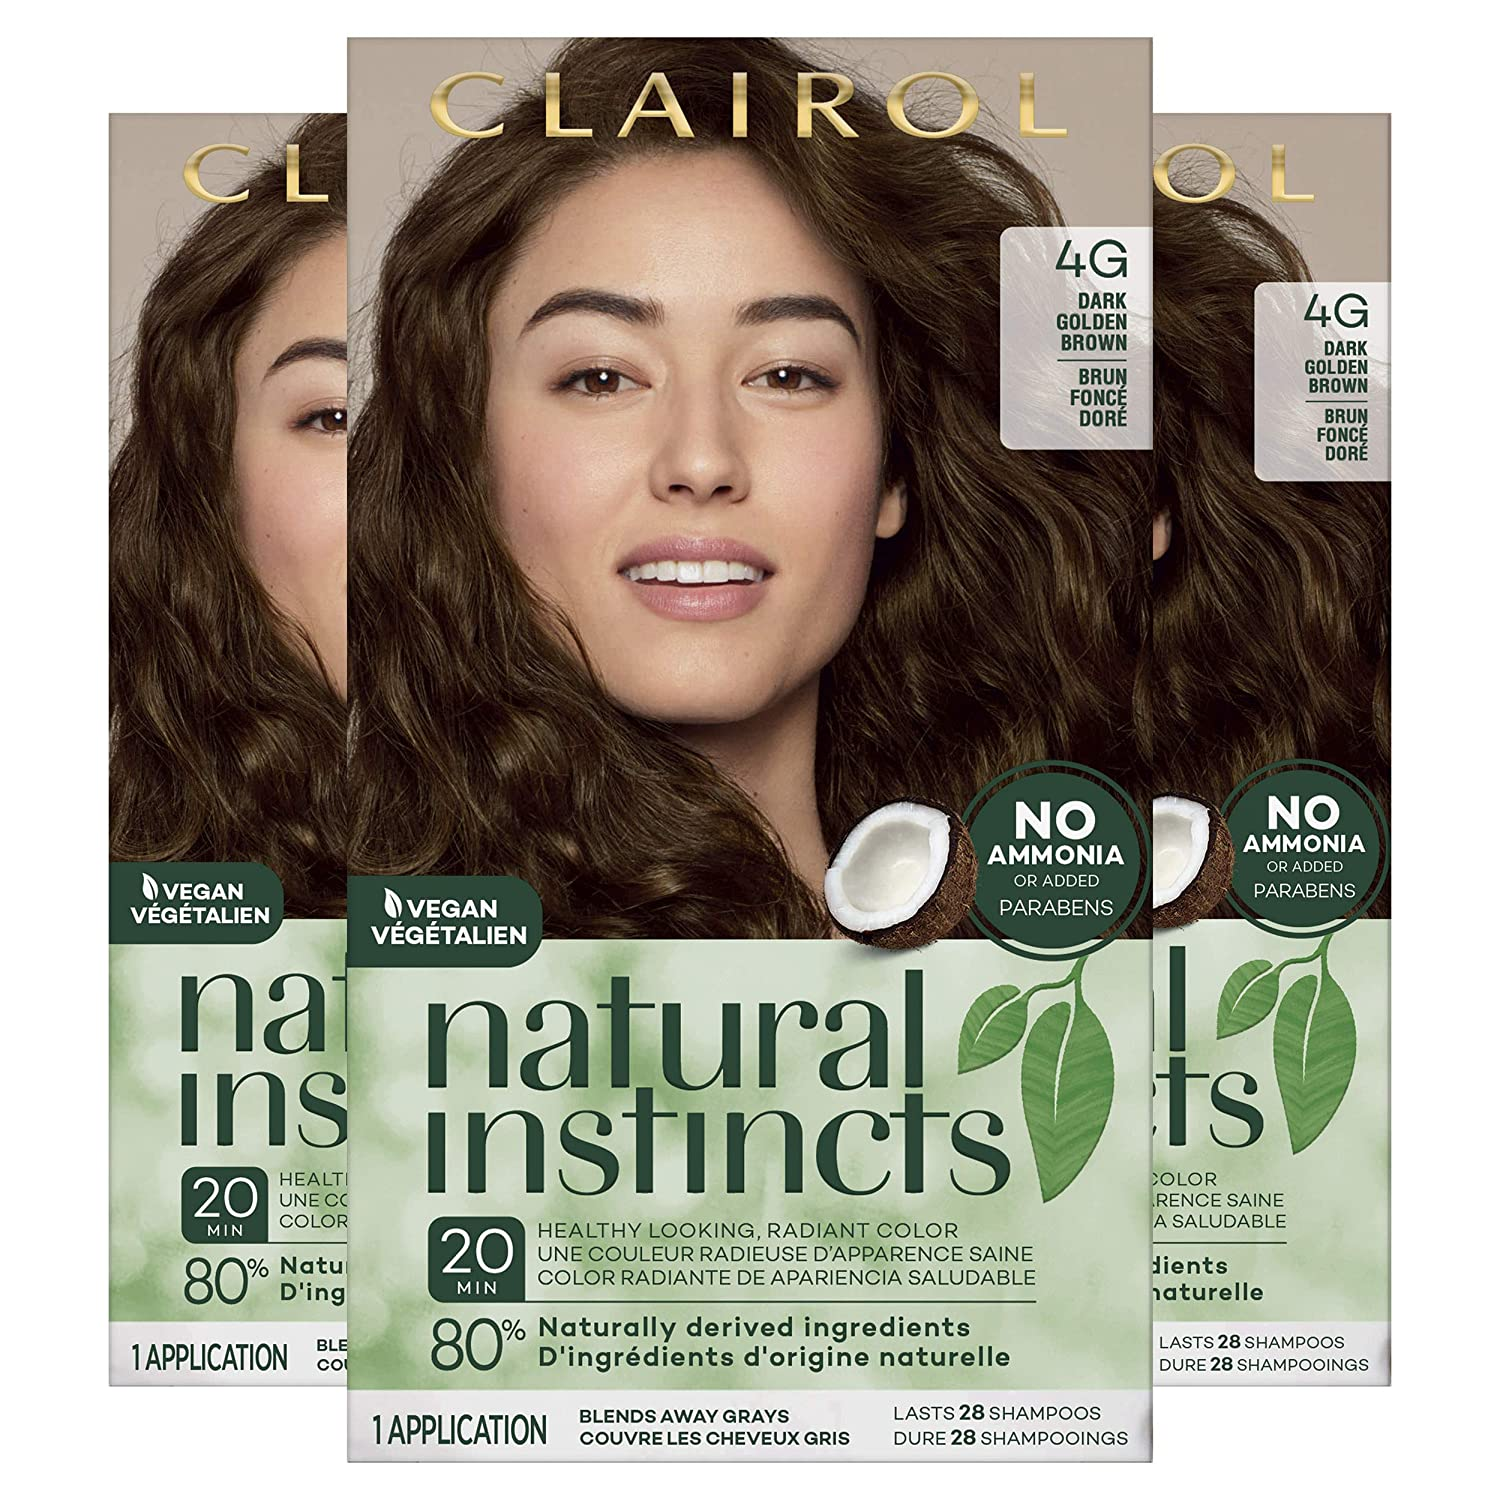 Clairol Recommended Natural Instincts Louisville-Jefferson County Mall Semi-Permanent Hair Golde Dye Dark 4G